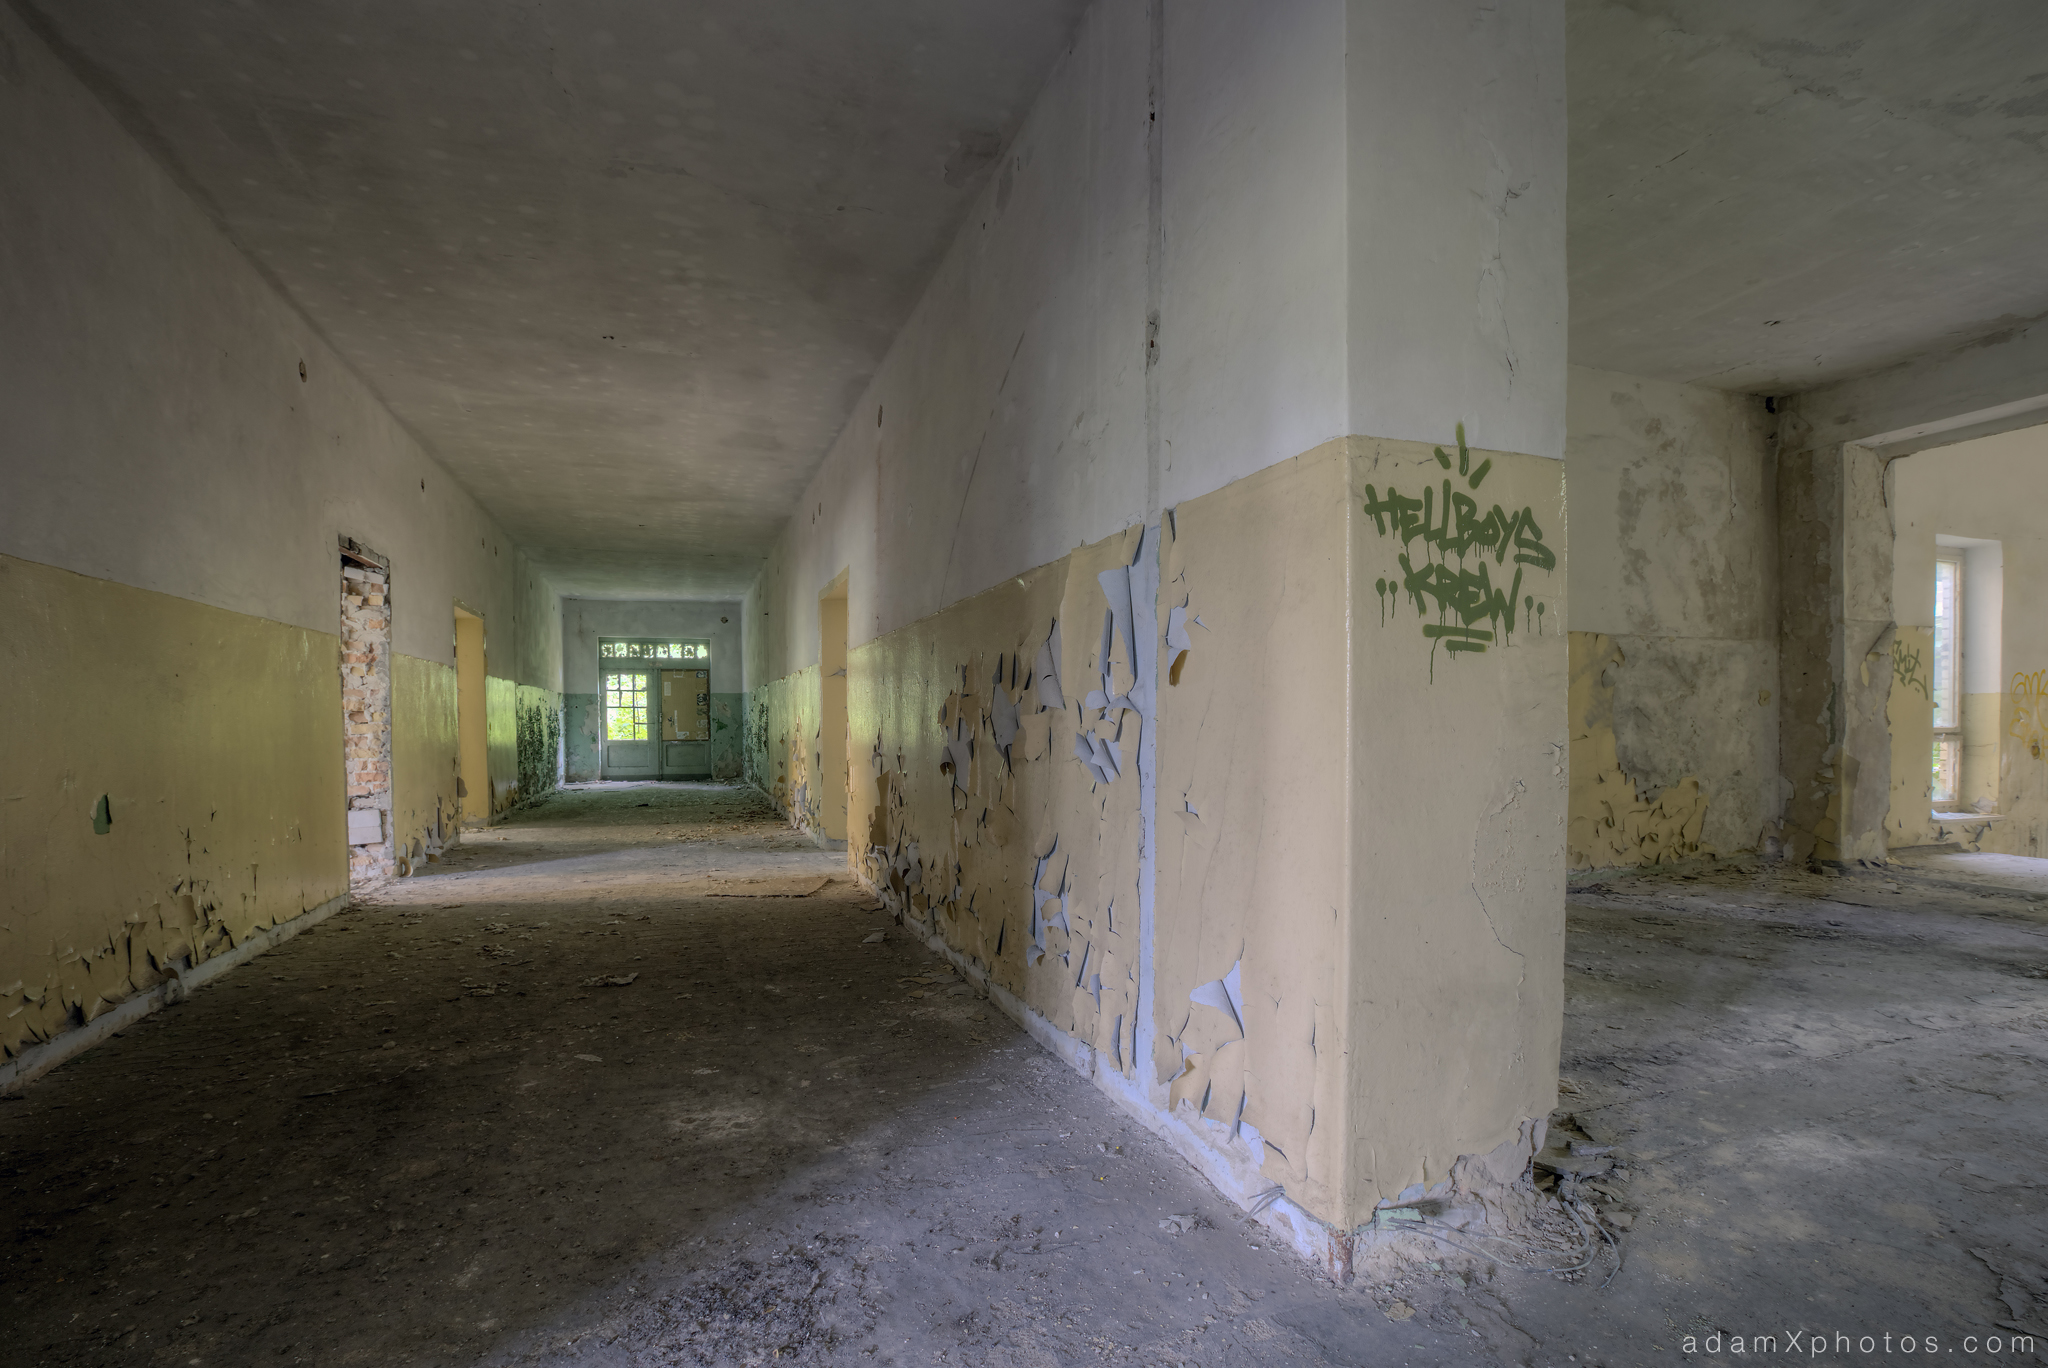 Adam X Urbex Urban Exploration Abandoned Germany Wunsdorf barracks soviet corridor decay peeling paint